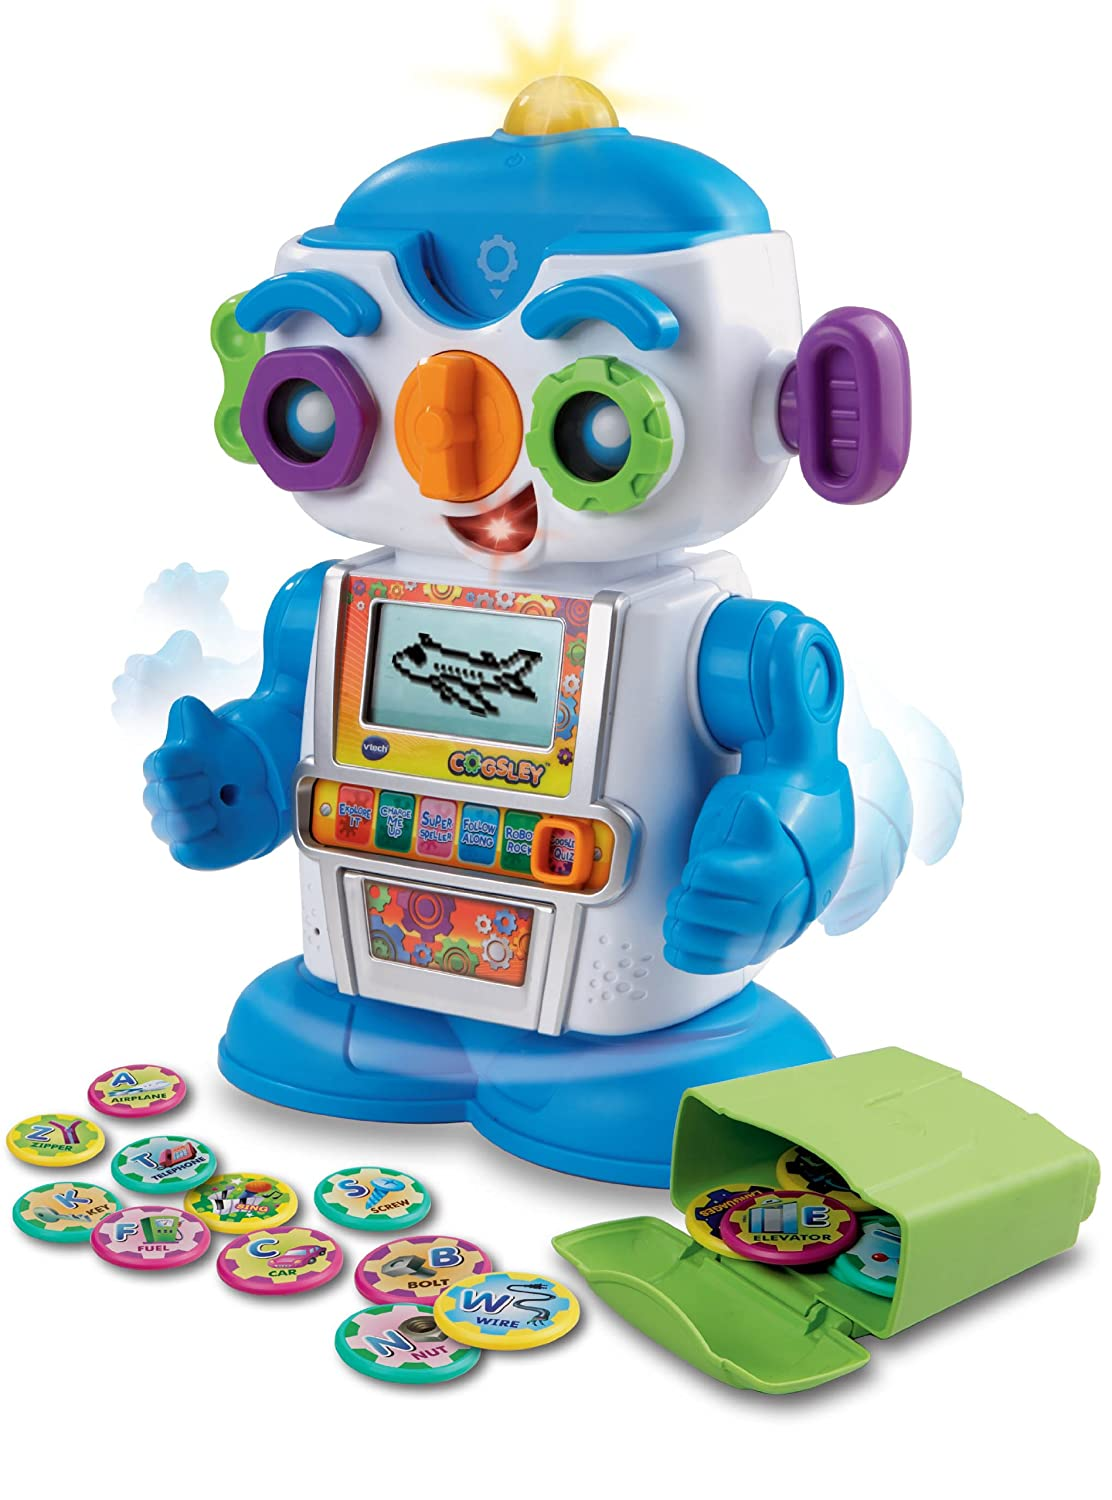 Toddler Educational Toys : Great educational toys for toddlers from vtech